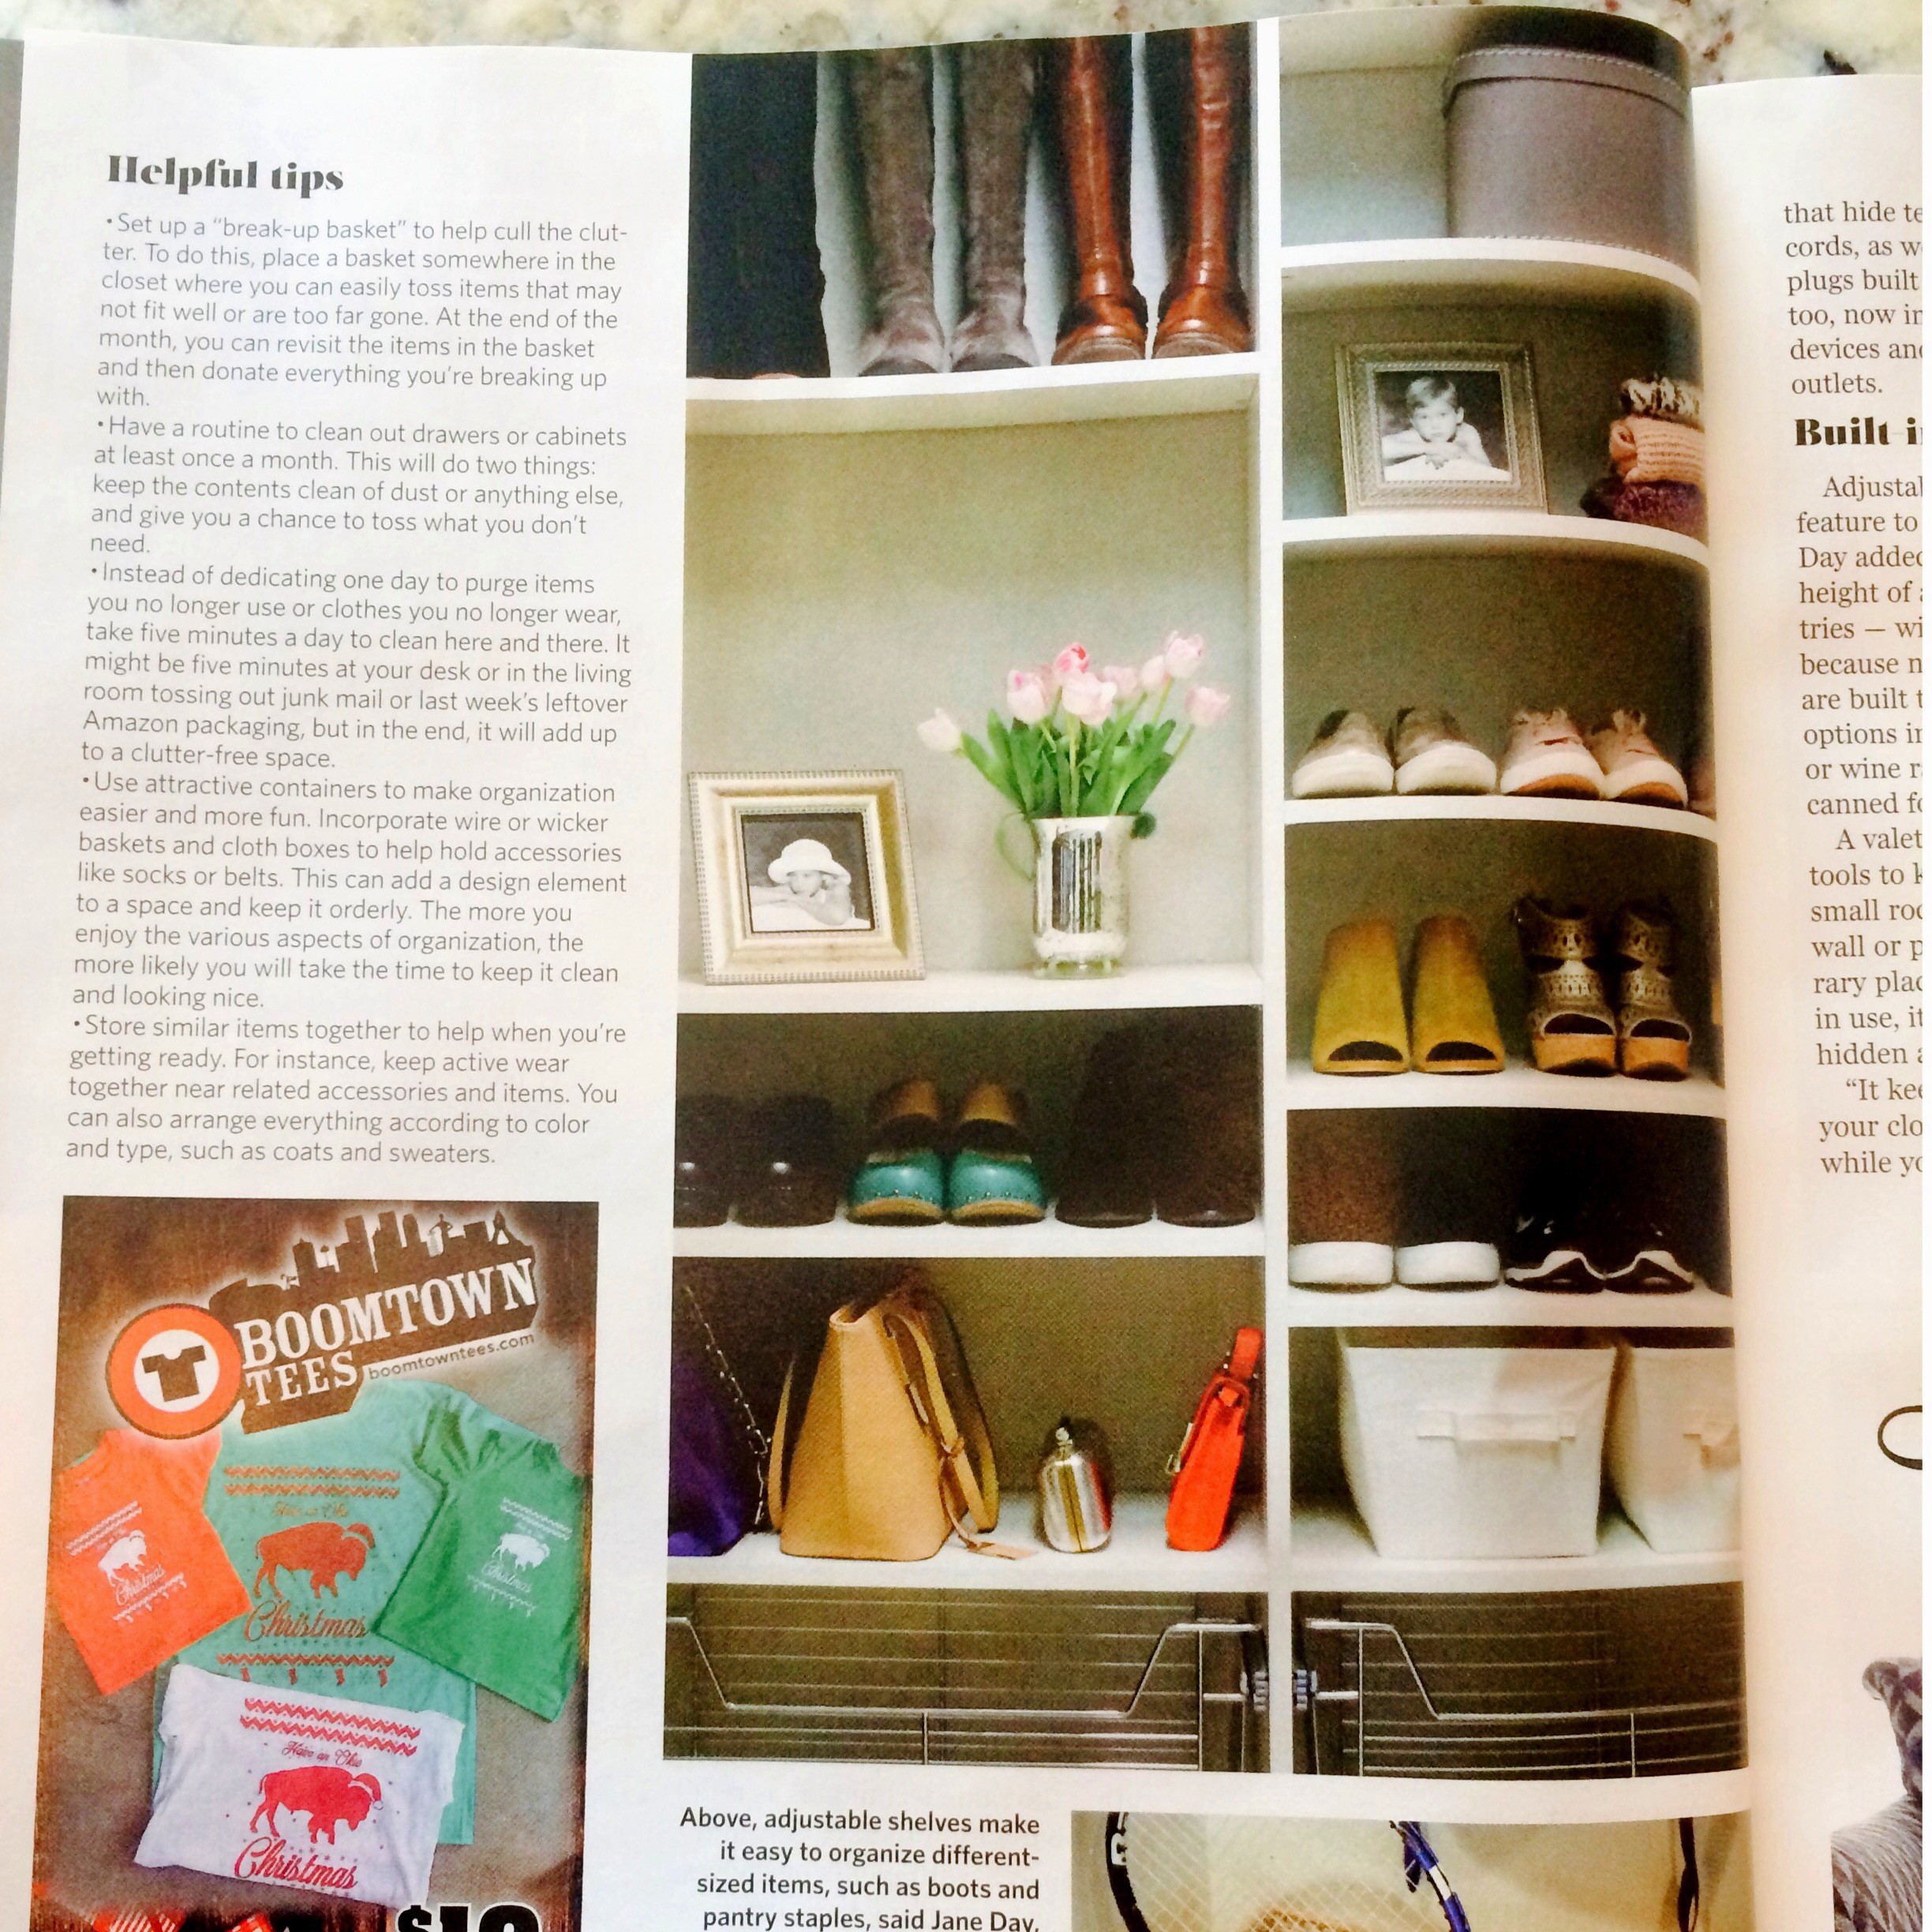 This custom closet shoe rack by Closets of Tulsa was featured in the winter issue of Tulsa World Magazine, along with many of our favorite storage tips!  Call Closets of Tulsa  today for a FREE consultation and 3-D closet design:  918.609.0214